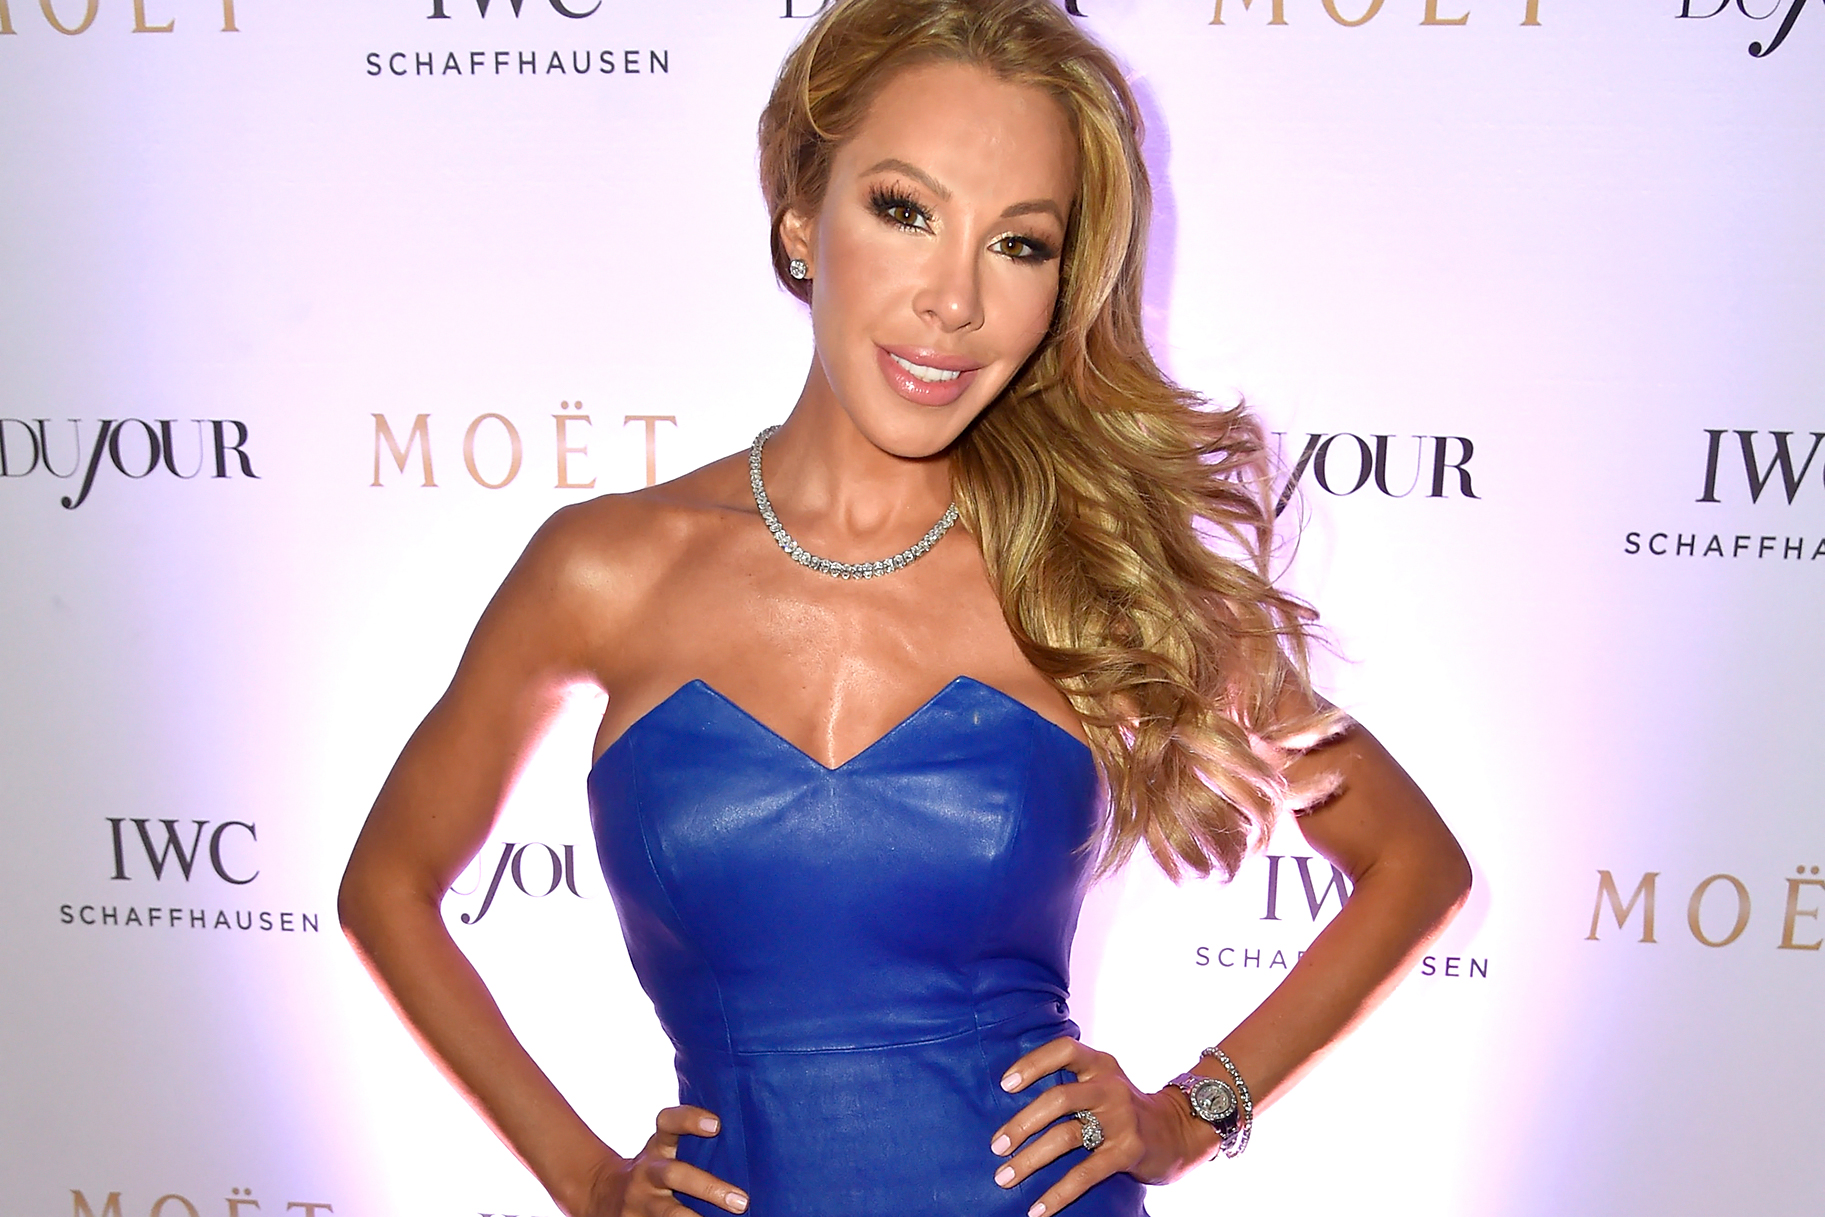 Cleavage Lisa Hochstein nude photos 2019